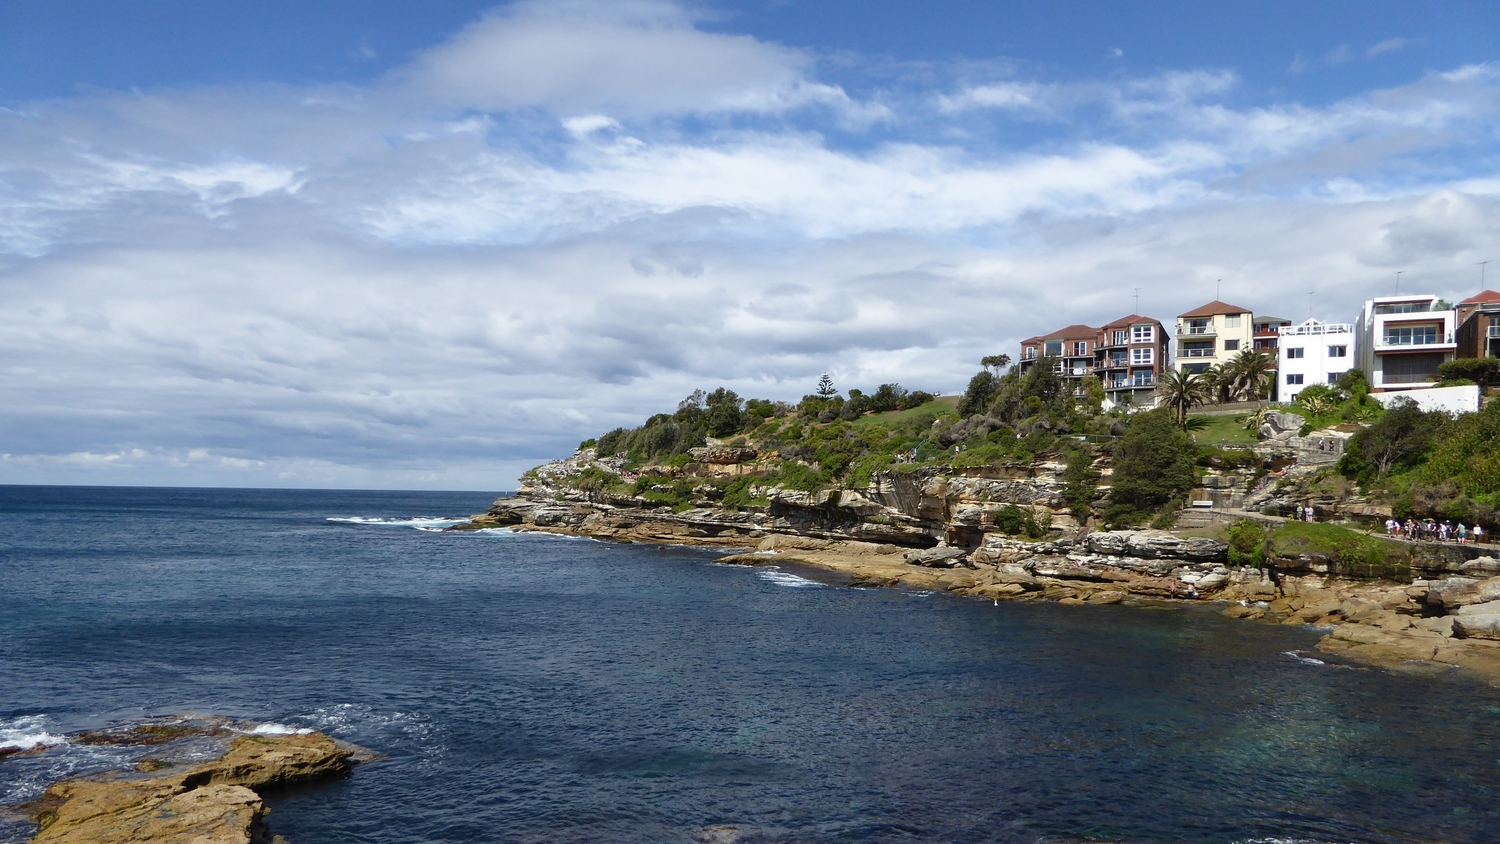 Bondi to Bronte coastal walk